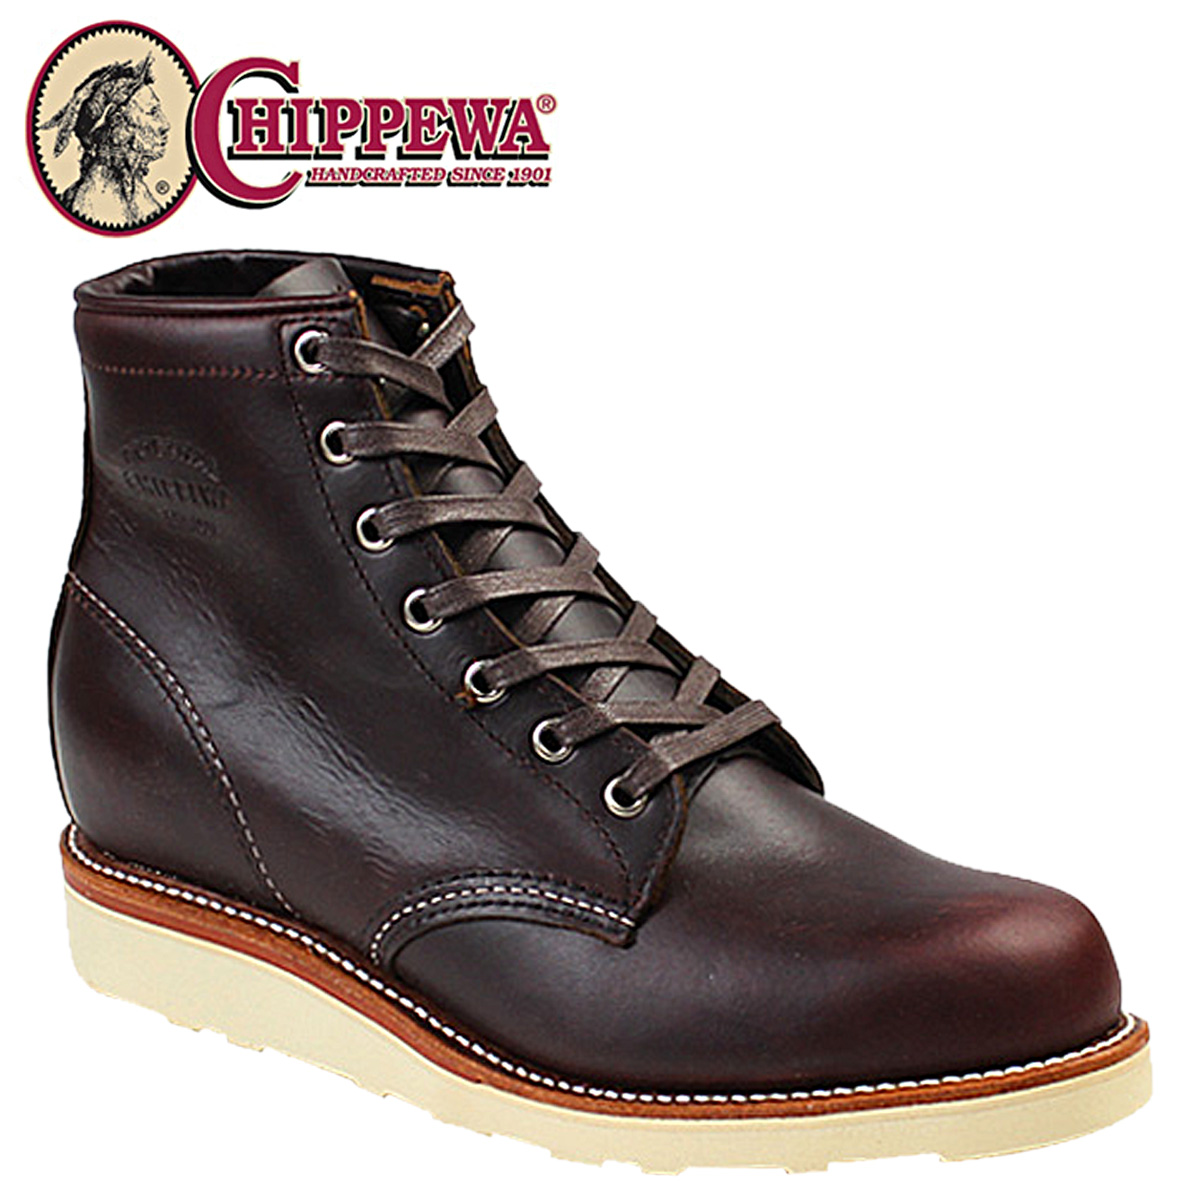 CHIPPEWA チペワ INCH PLAIN TOE WEDGE boots 6 inches plane toe wedge boots 61901M16 D Wise cordovan leather men